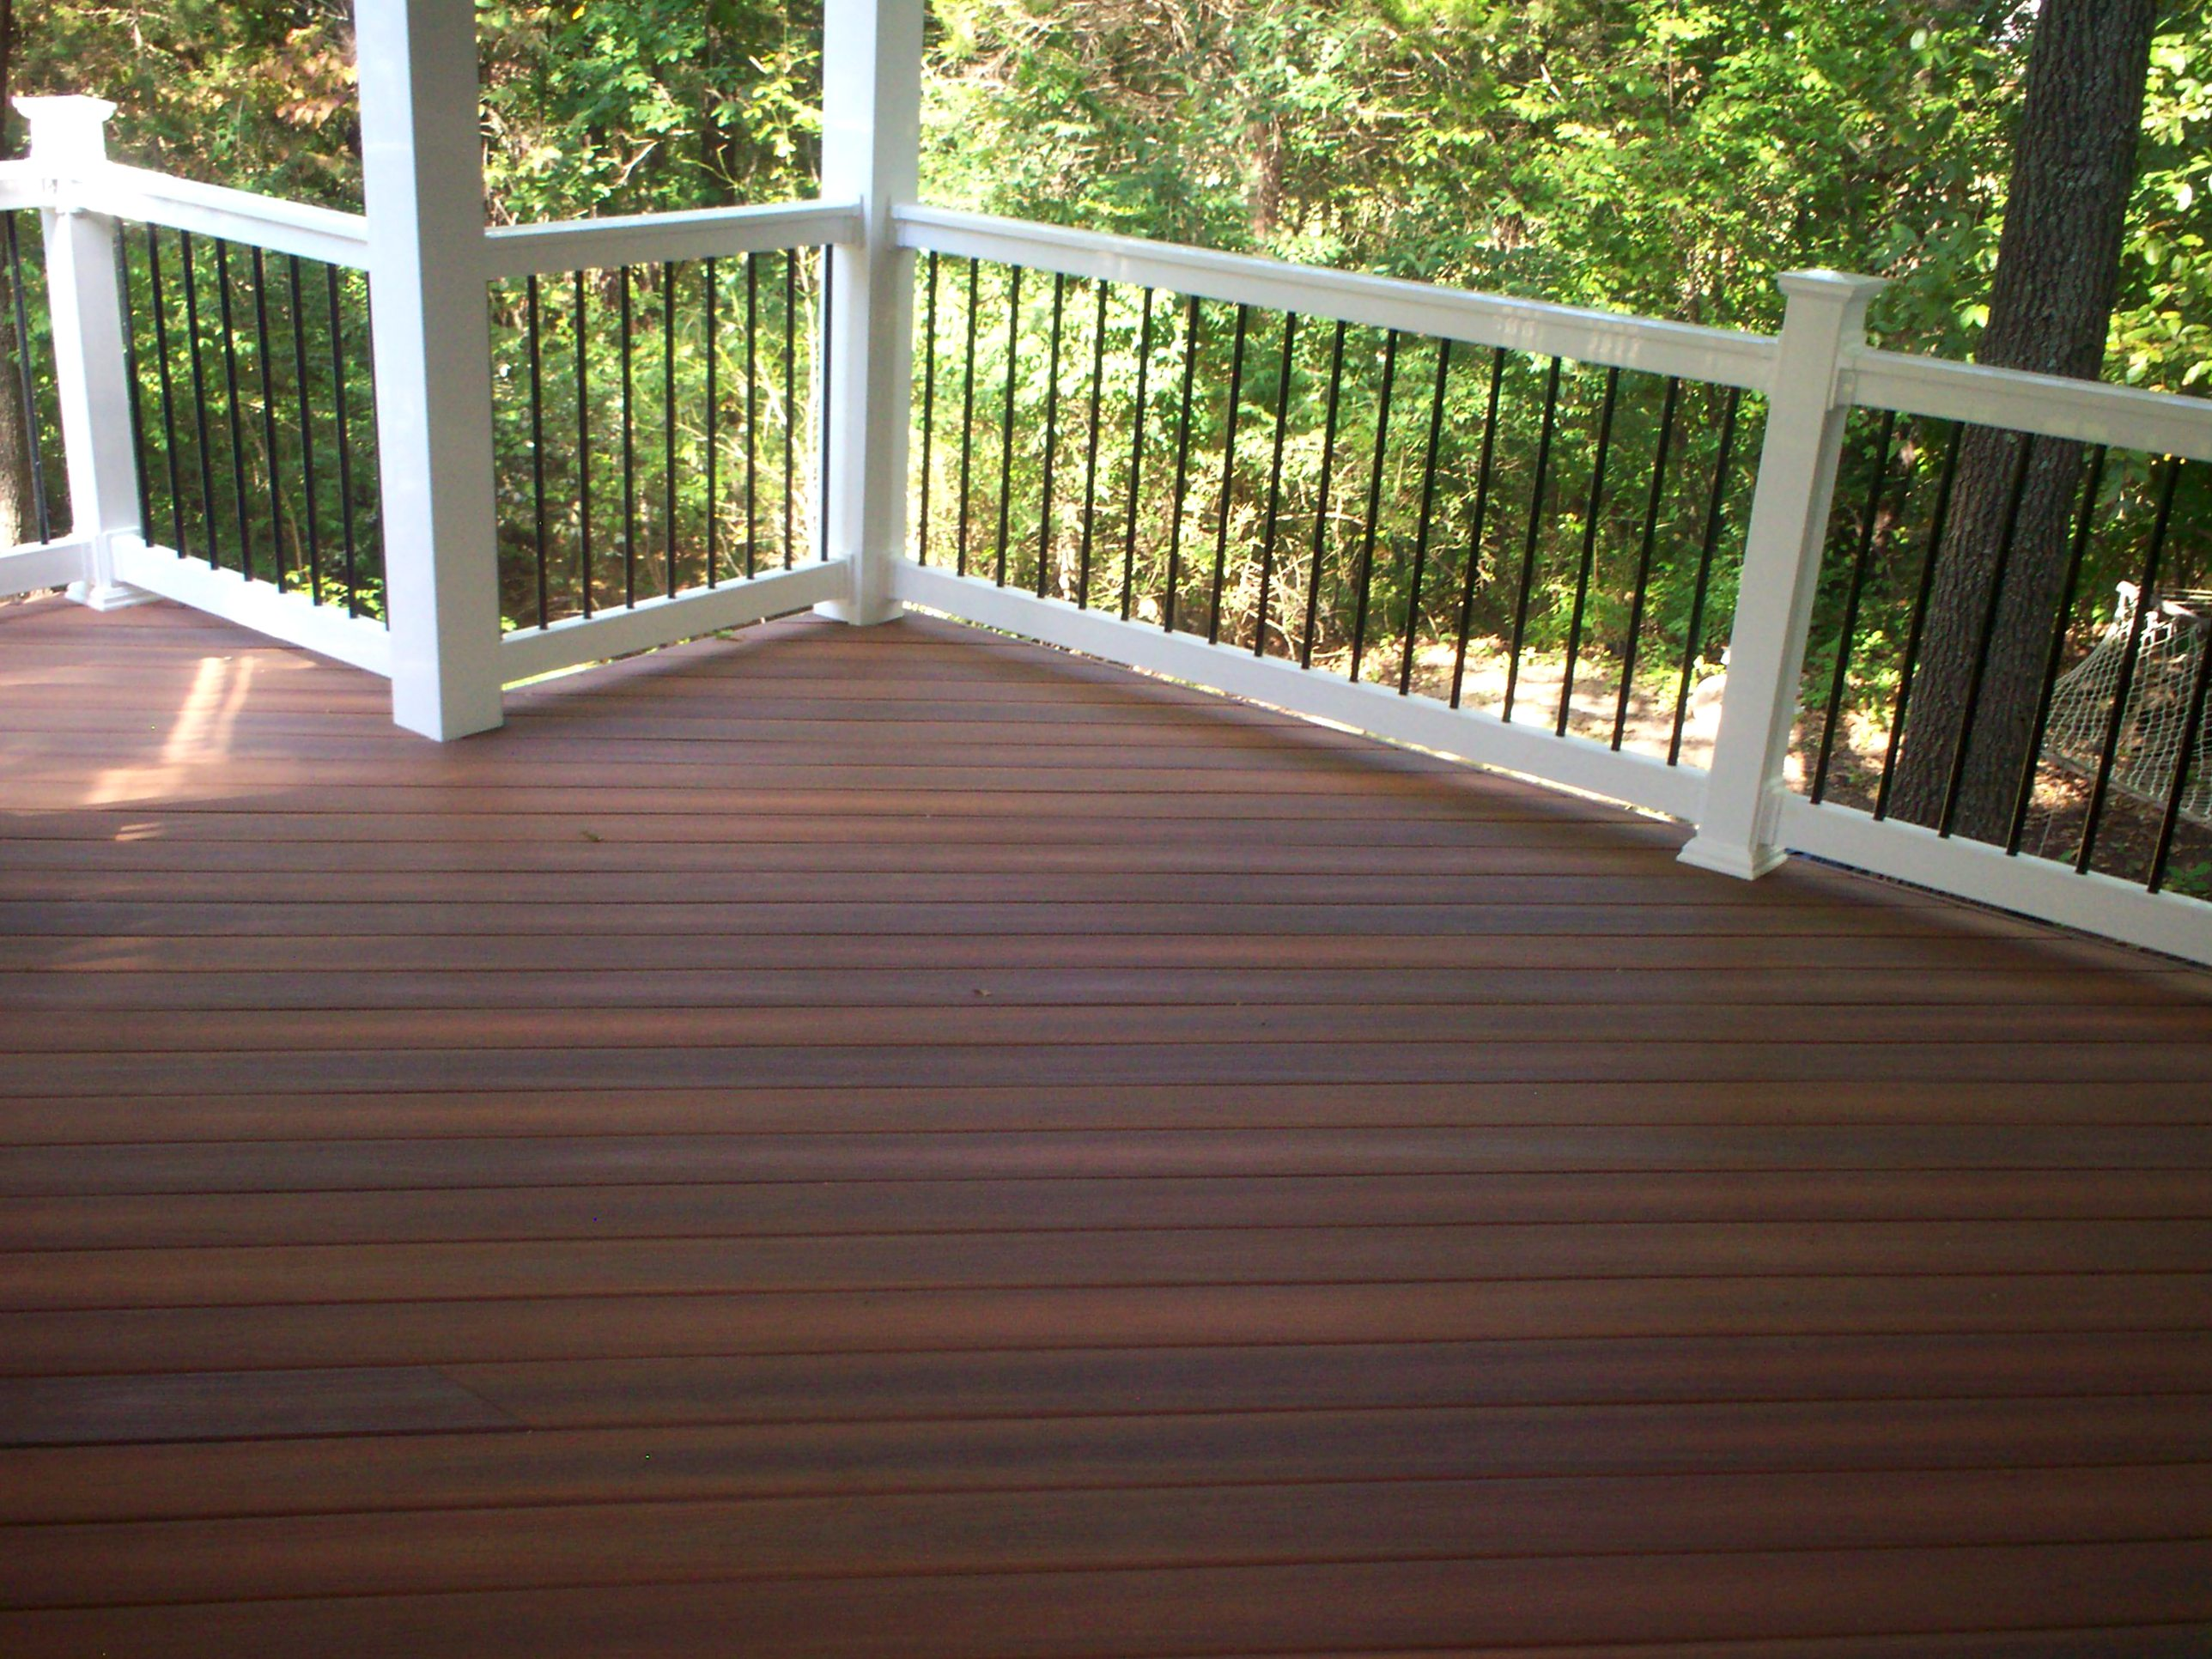 Composite decking with a hardwood look st louis decks for Hardwood outdoor decking